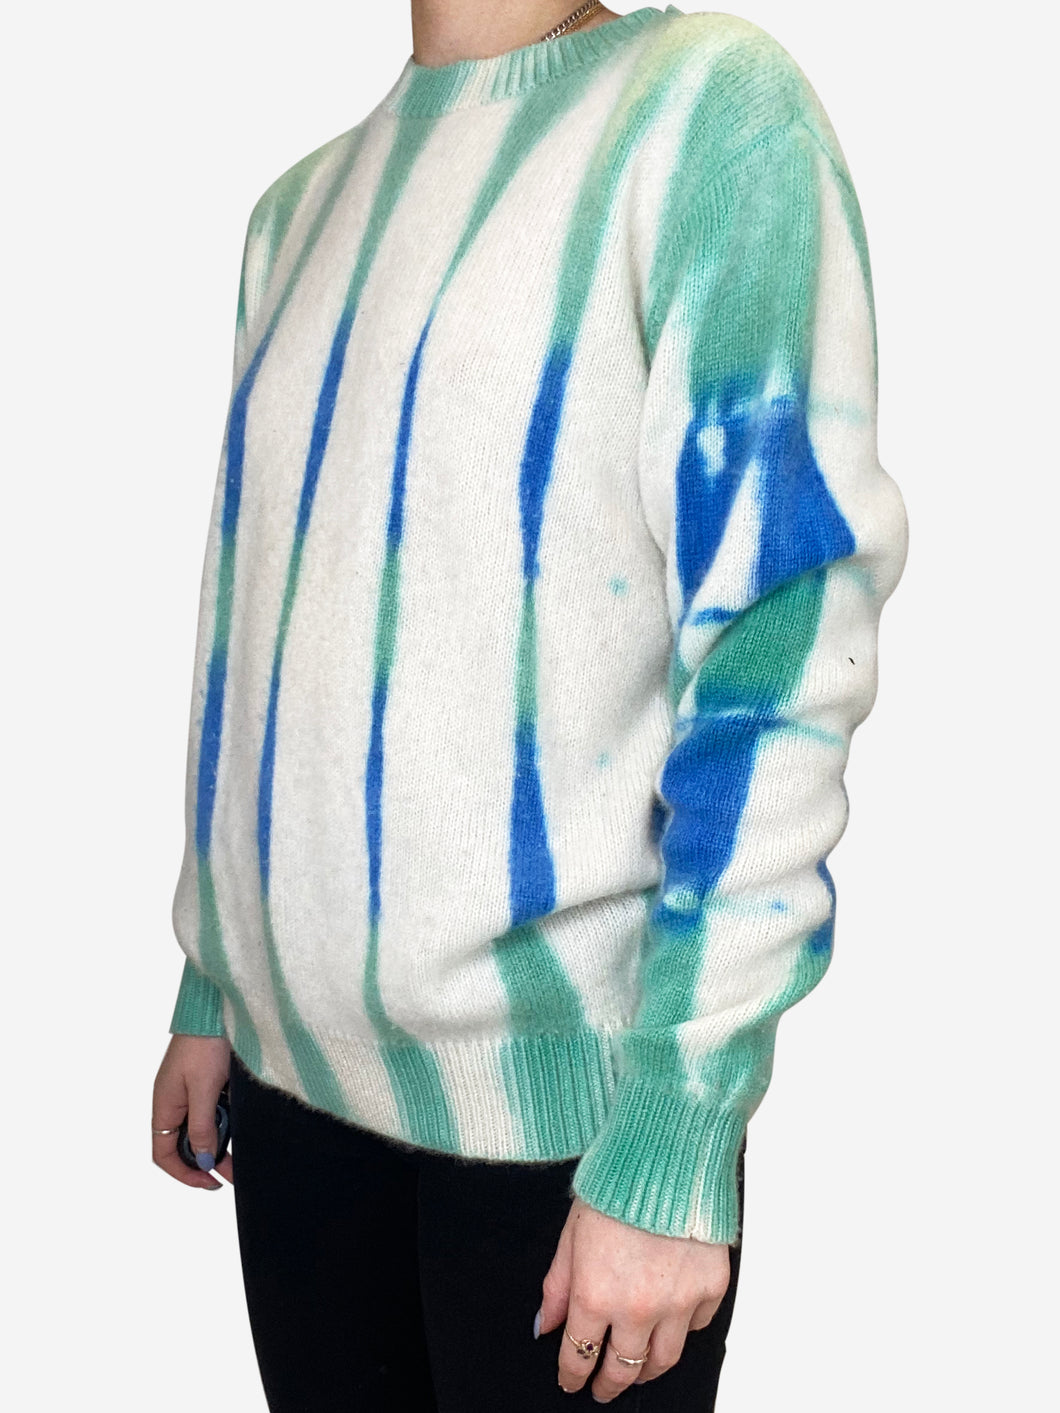 Beetle blue green and cream tie-dyed cashmere sweater - size XS